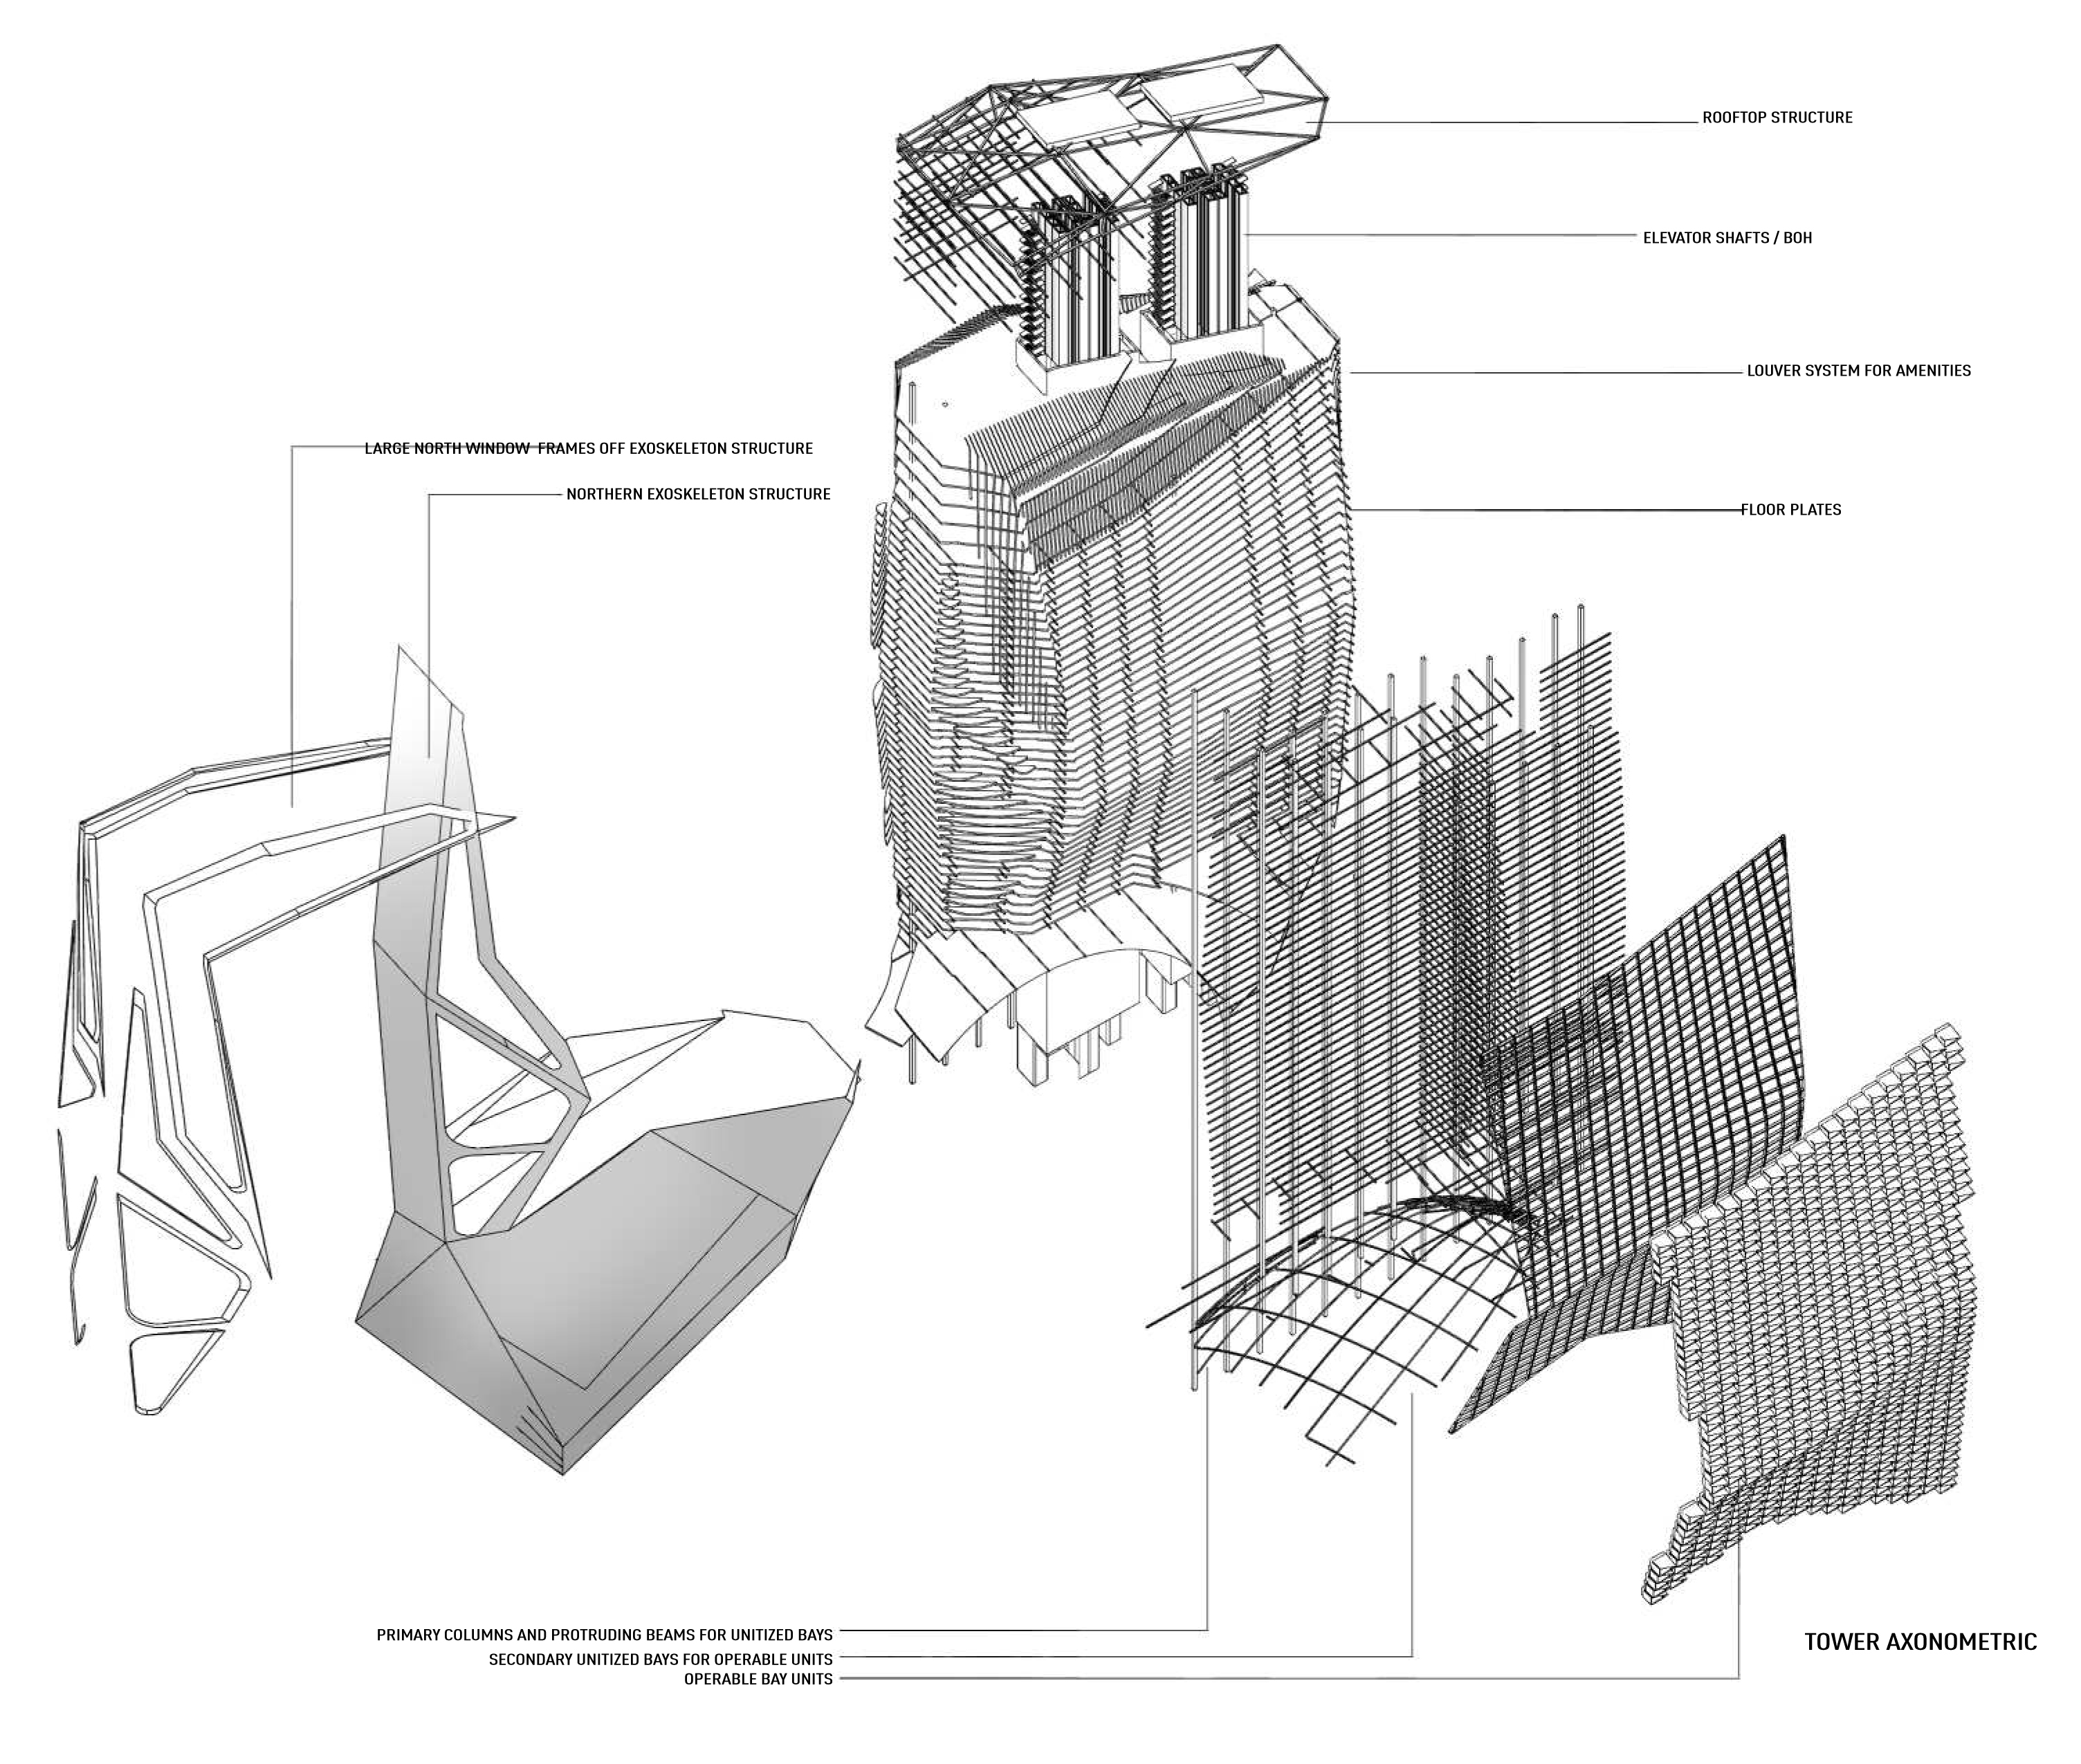 Robotic Facade For A New Skyscraper In Chicago Reacts To